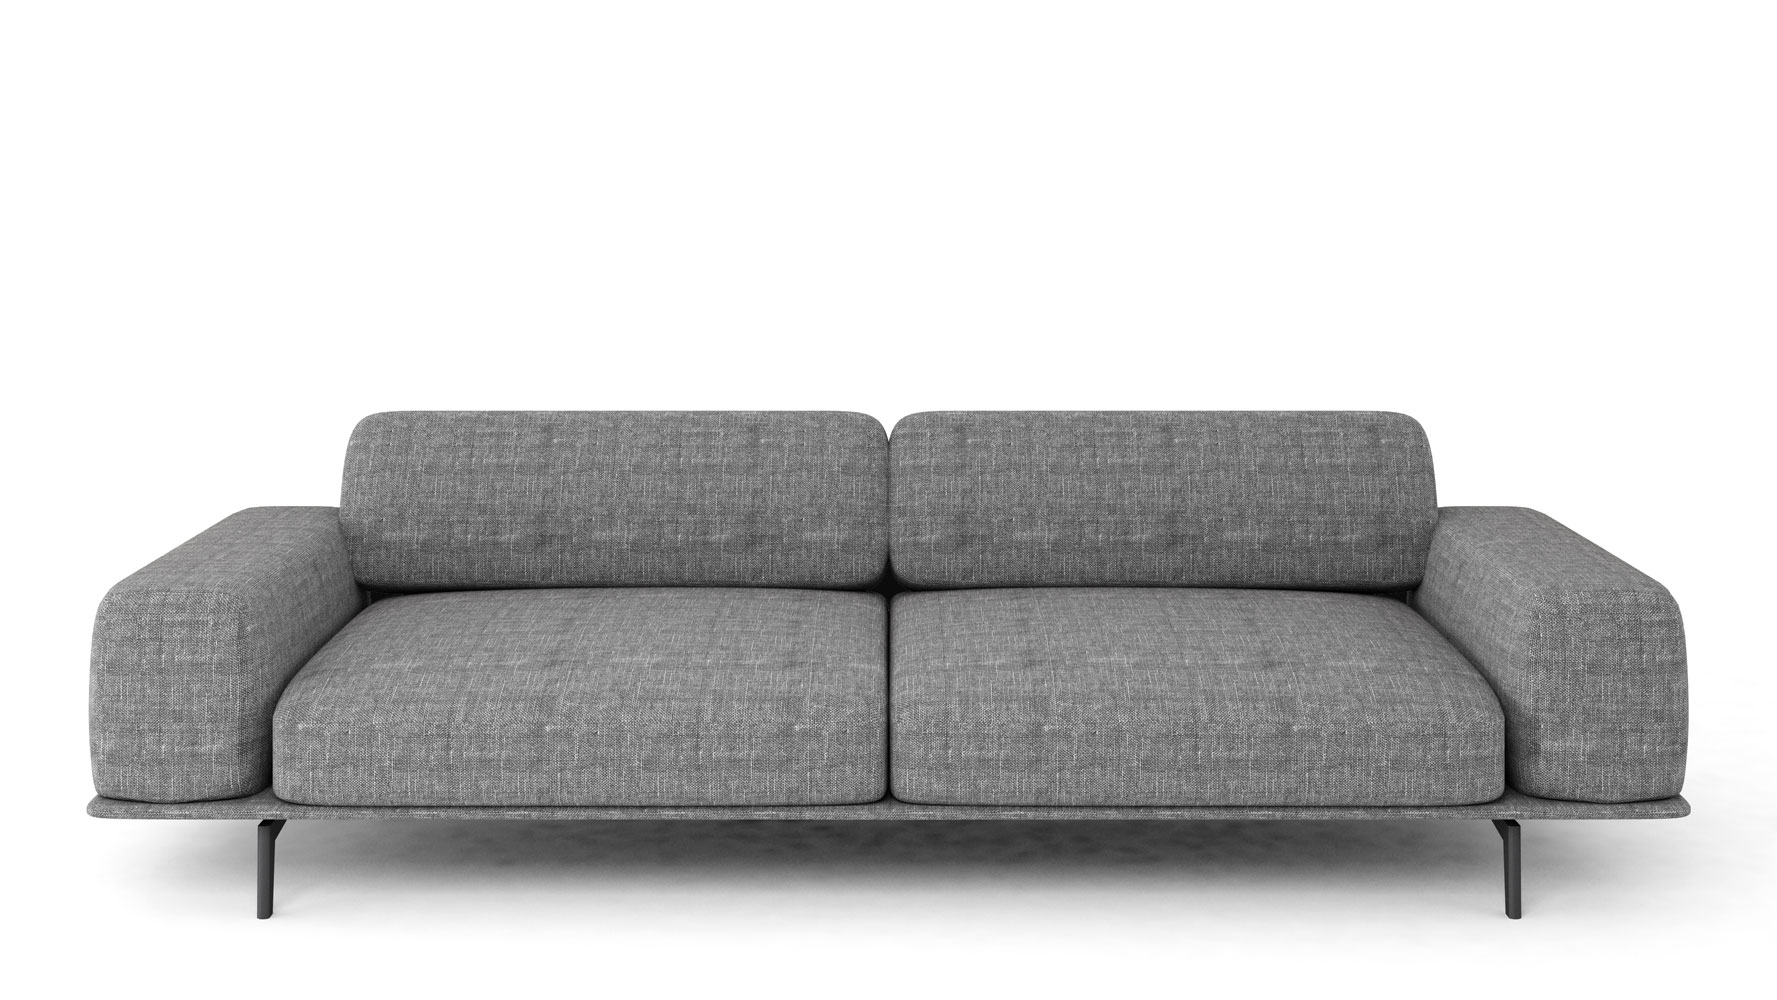 Rolf Benz Sofa Pfister Central This Weber Design Unlimited